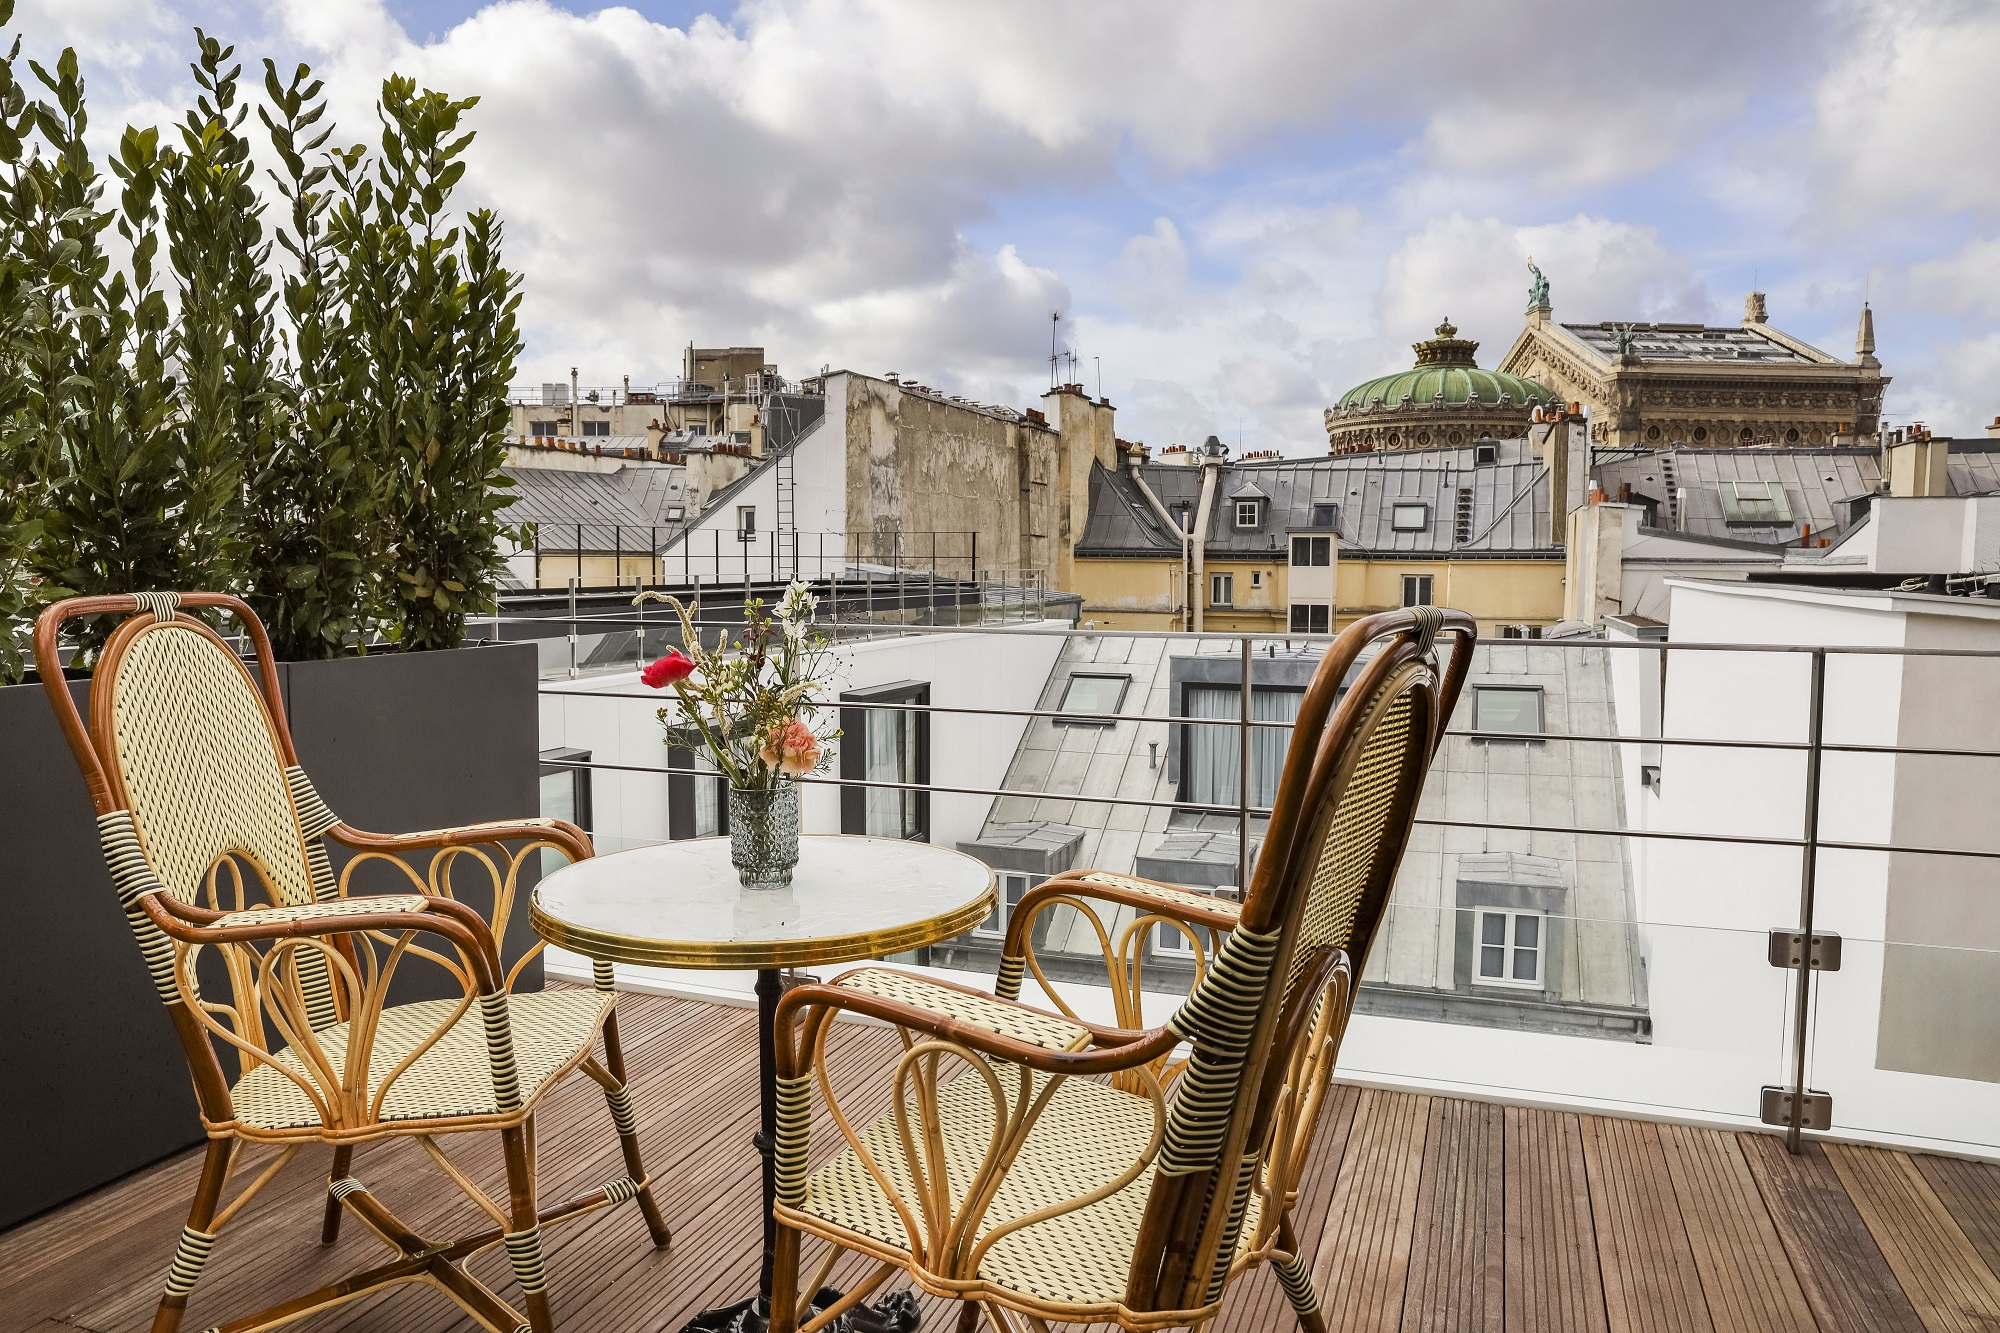 338/Vendome/Chambres/Suite/maison_albar_hotels_le_vendome_suite_opera_private_terrace_3.jpg